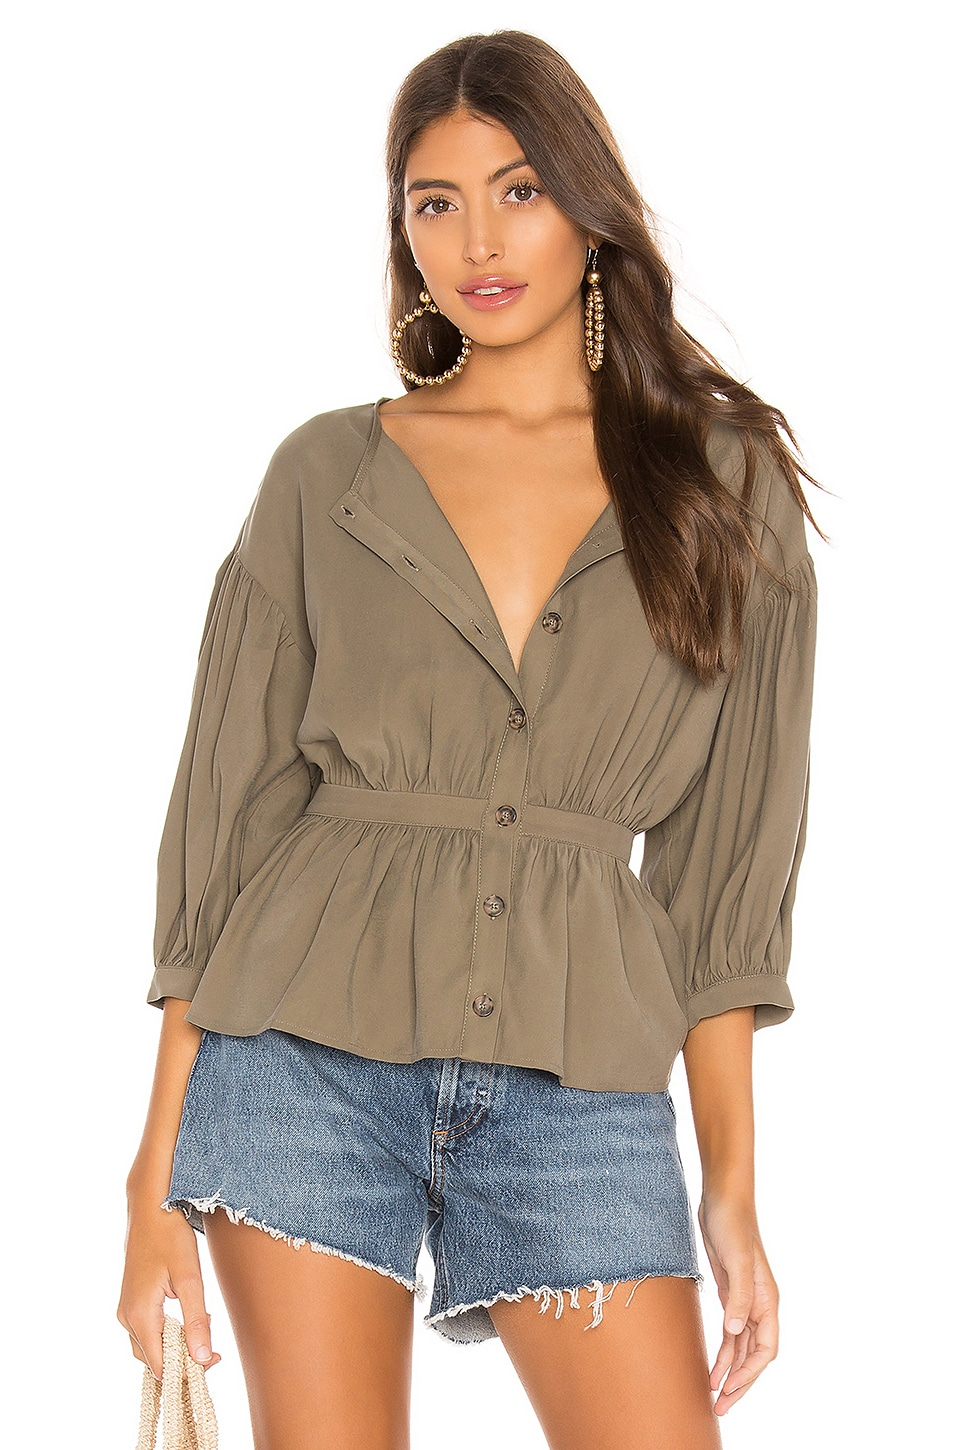 L'Academie The Danielle Blouse in Olivine Green